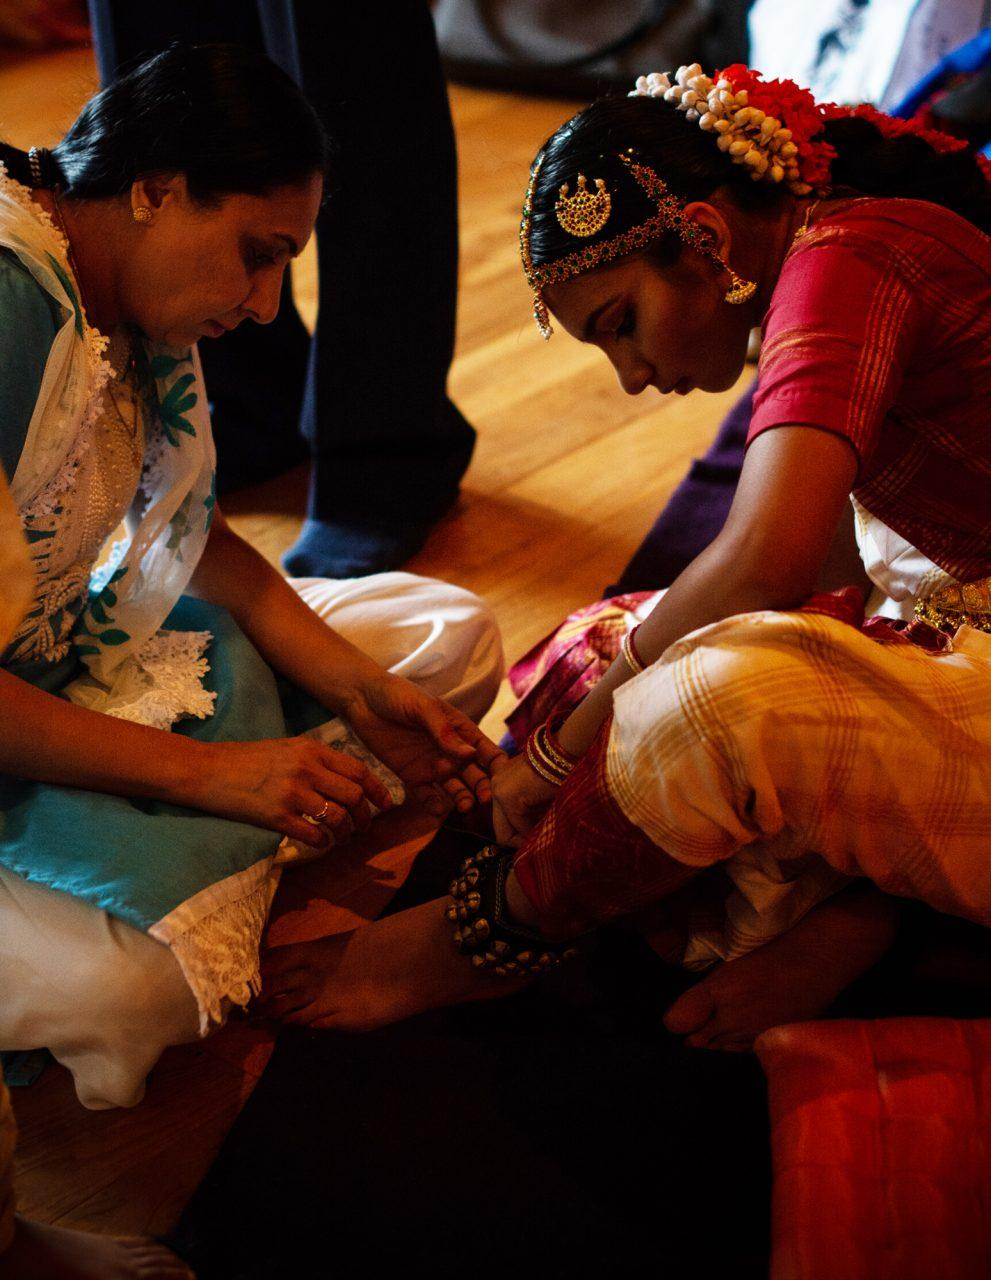 With help from her mother, Janavi Mehta straps bells to her ankles in preparation for her dance performance.